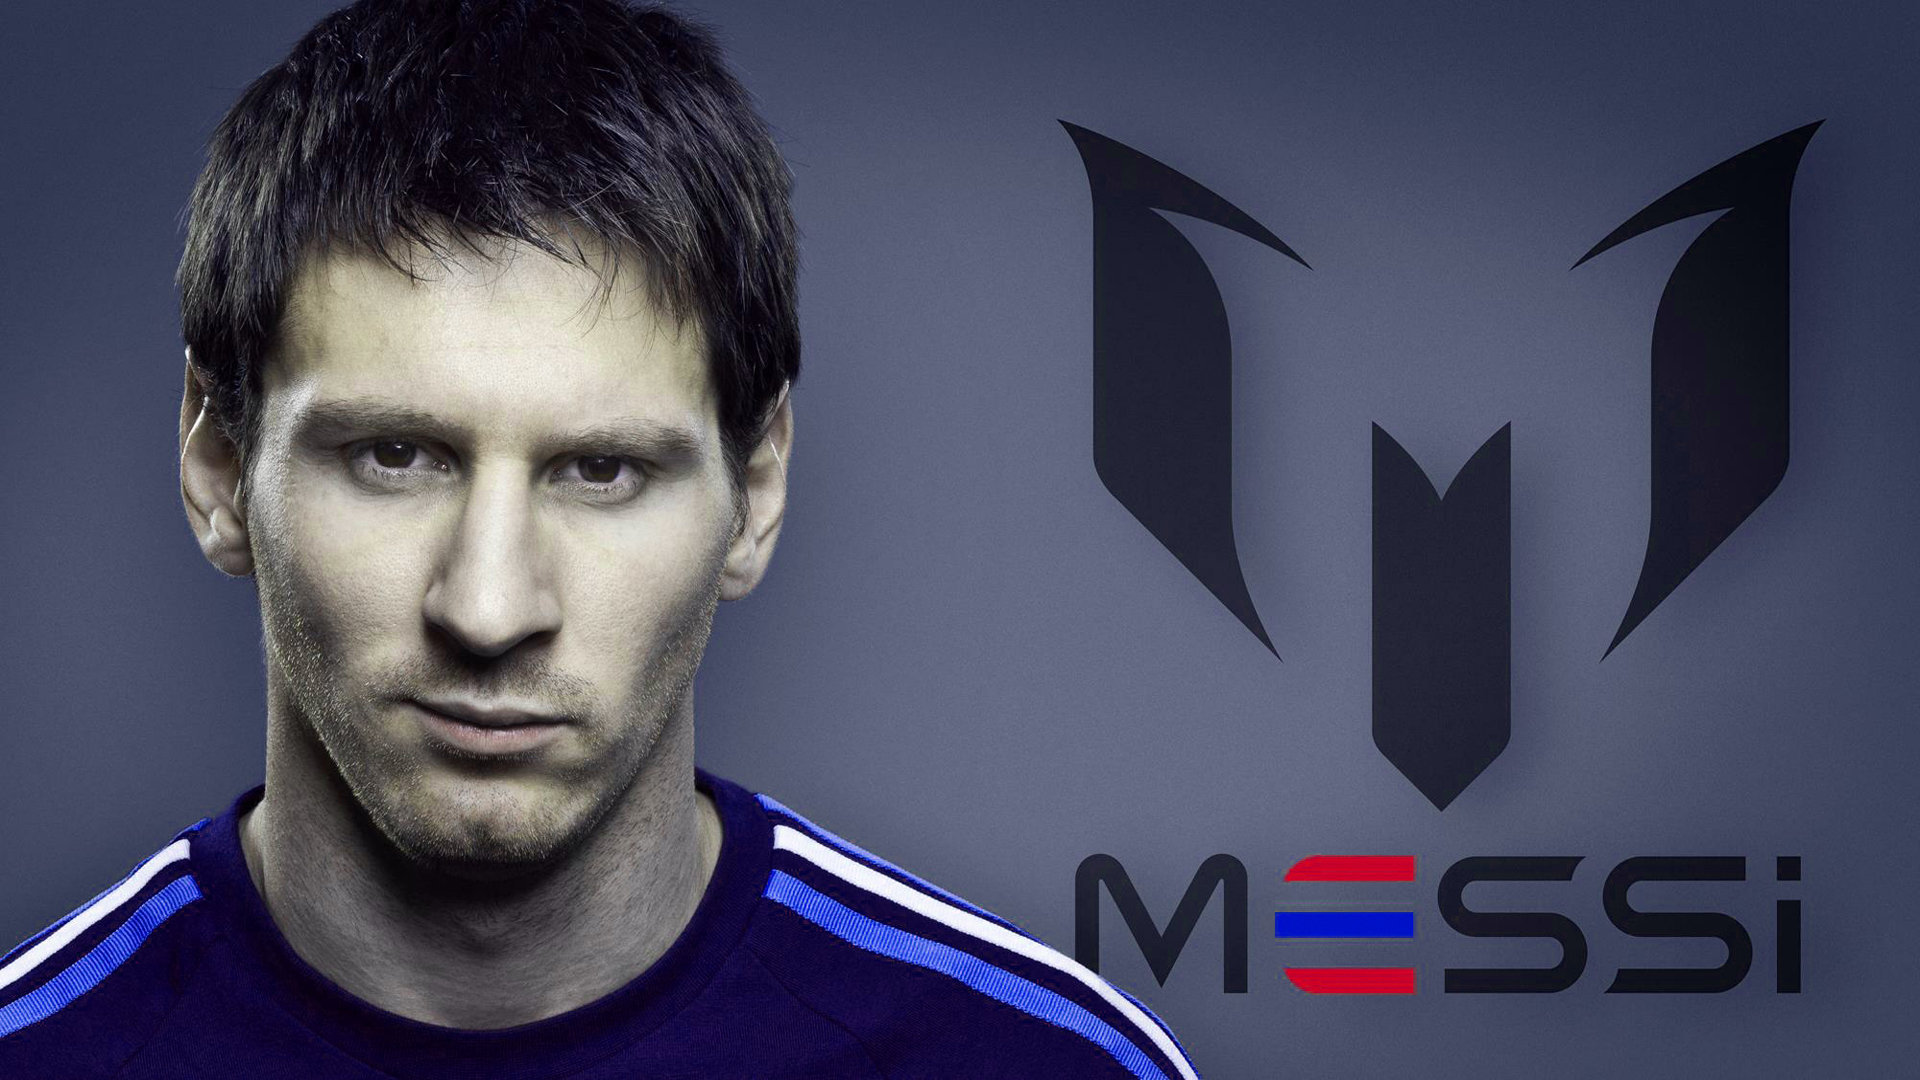 Lionel Messi Wallpapers Pictures Images 1920x1080